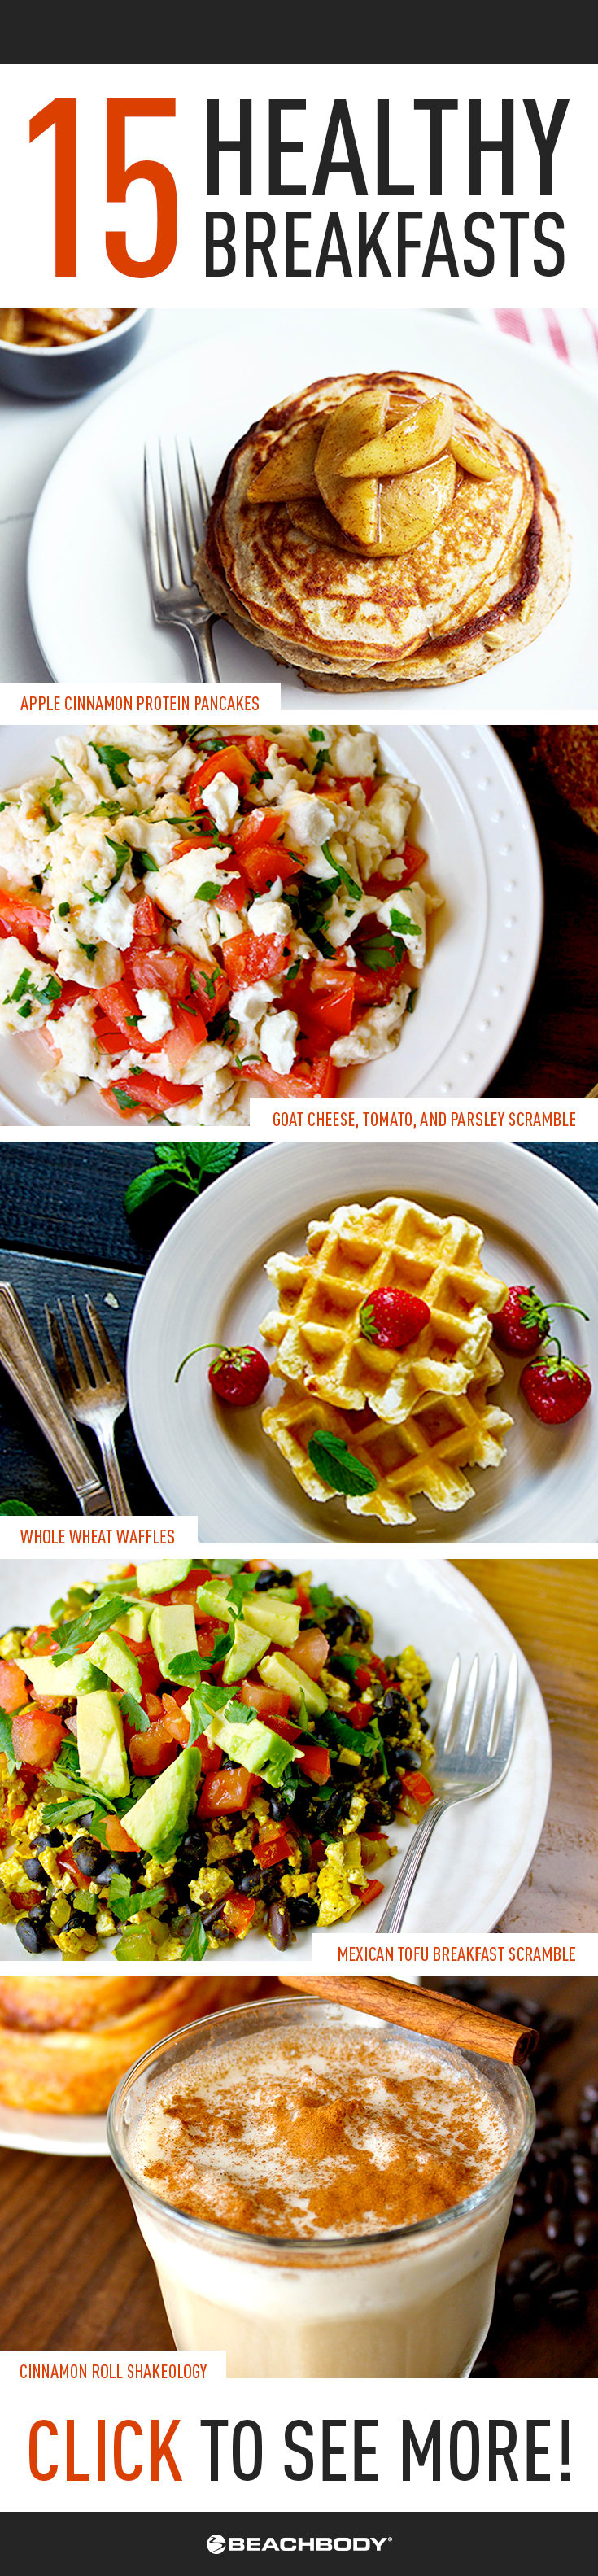 15 healthy breakfast recipe ideas the beachbody blog 15 healthy breakfasts forumfinder Gallery